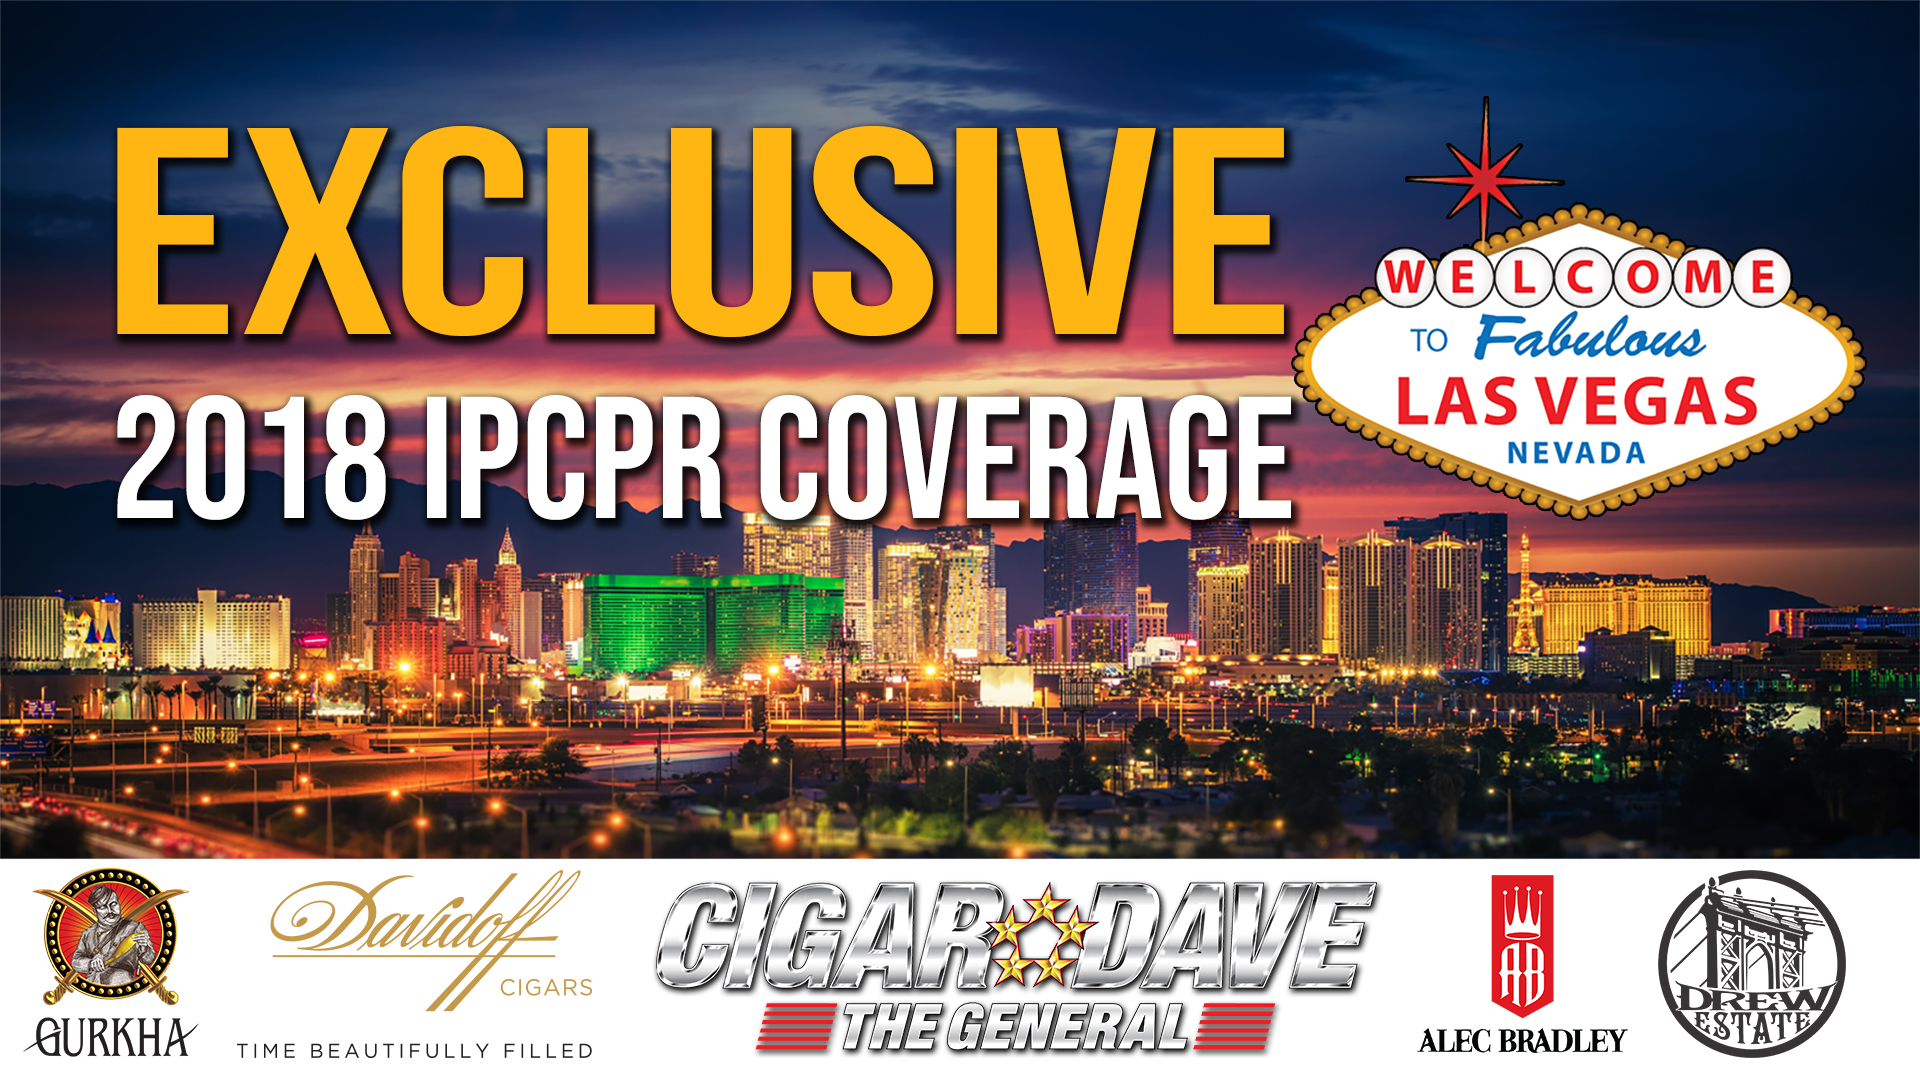 Cigar Dave's Exclusive 2018 IPCPR Coverage from the Las Vegas Convention Center in Las Vegas, NV.